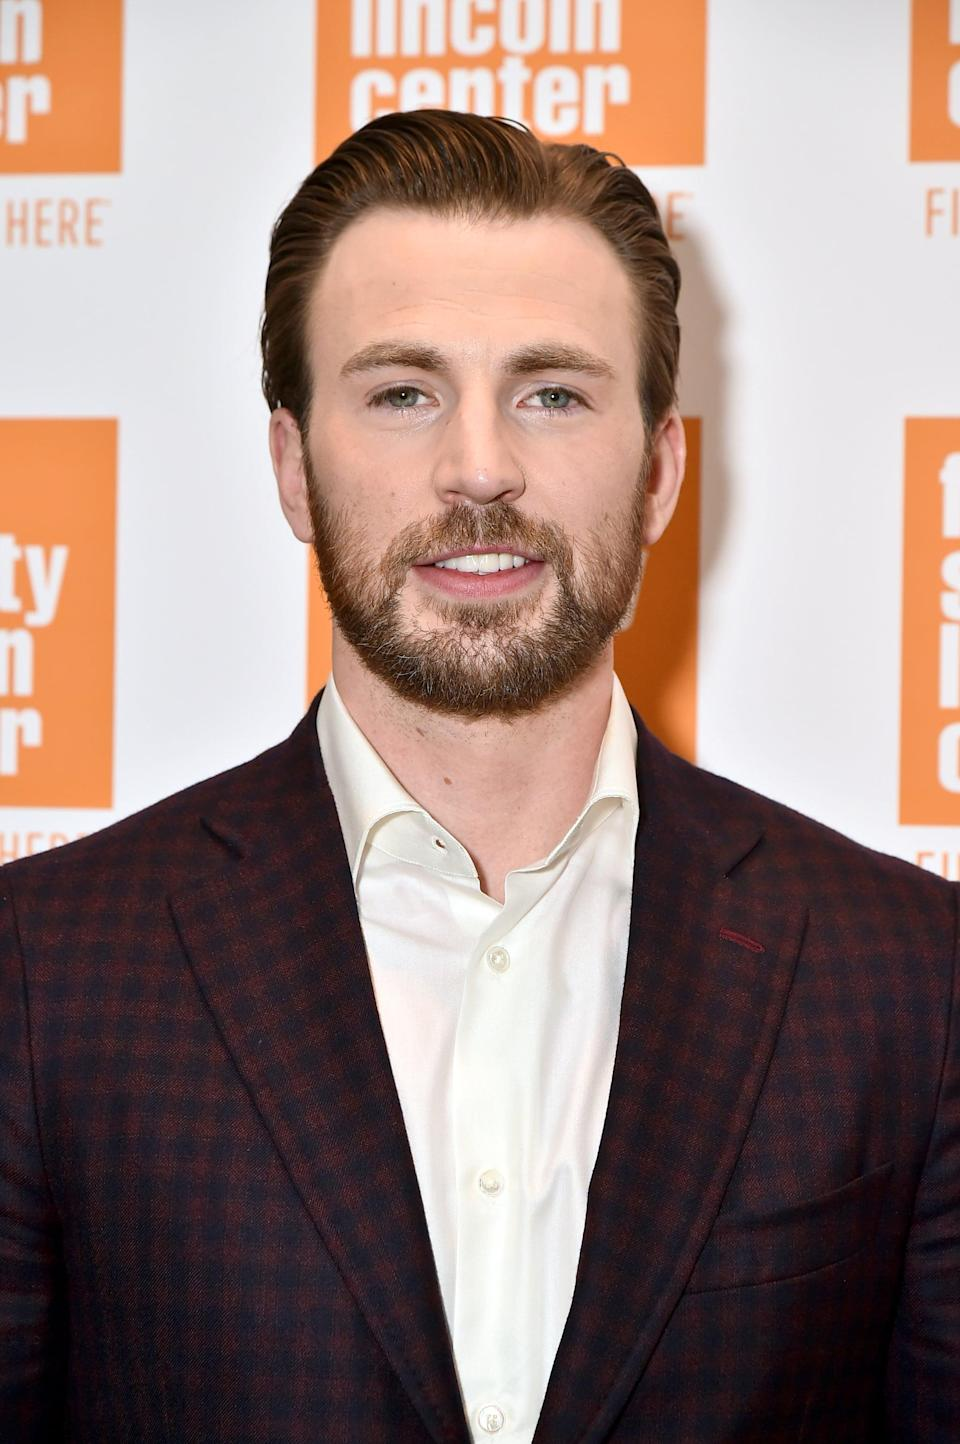 """<p>Minka and Chris first struck up a romance in 2007 and <a href=""""https://www.popsugar.com/celebrity/Who-Has-Chris-Evans-Dated-41091222"""" class=""""link rapid-noclick-resp"""" rel=""""nofollow noopener"""" target=""""_blank"""" data-ylk=""""slk:suffered a series of breakups and makeups"""">suffered a series of breakups and makeups</a> for the next seven years. The last time they were rumored to be back together was in September 2015, after being spotted together over Labor Day Weekend.</p>"""